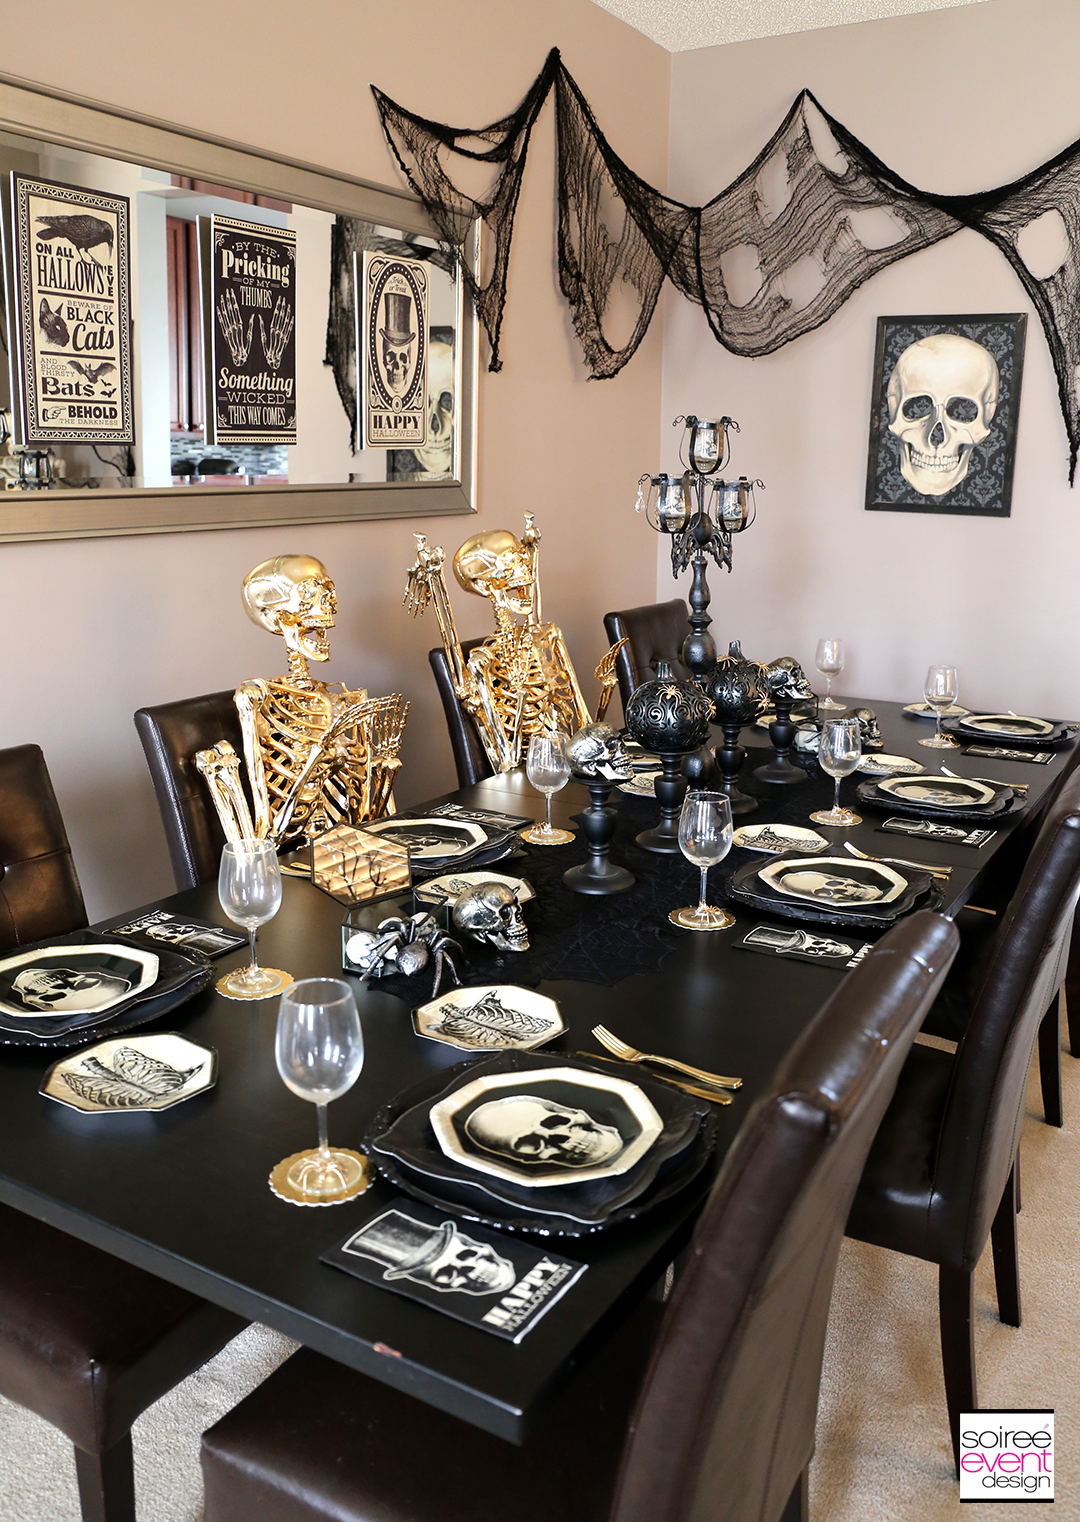 Black and Gold Halloween Decorating Ideas - Dining Table 2